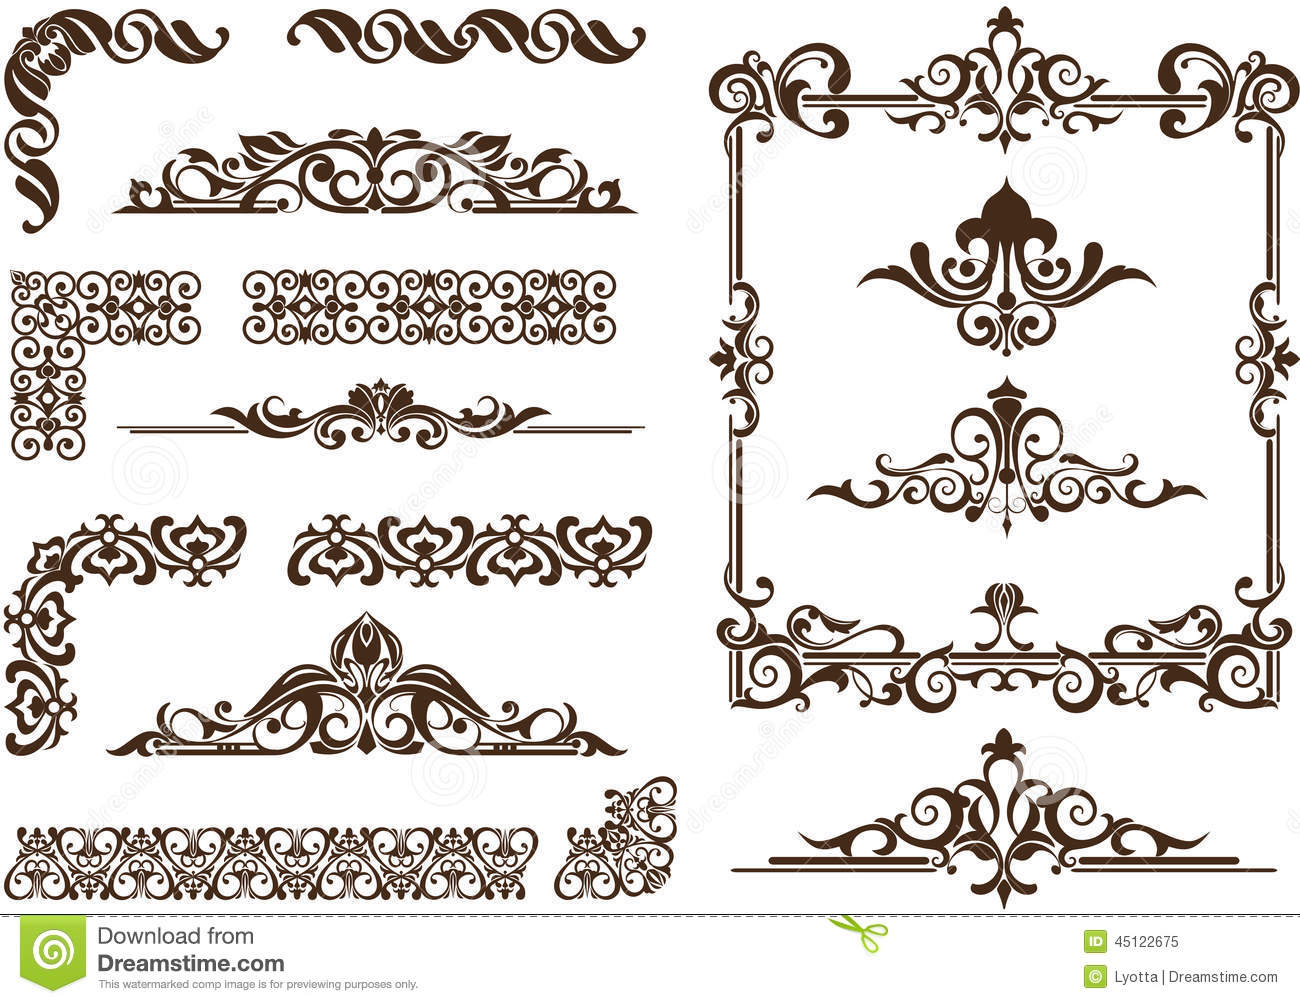 Art deco line designs google search i found these and for Art nouveau decoration ameublement